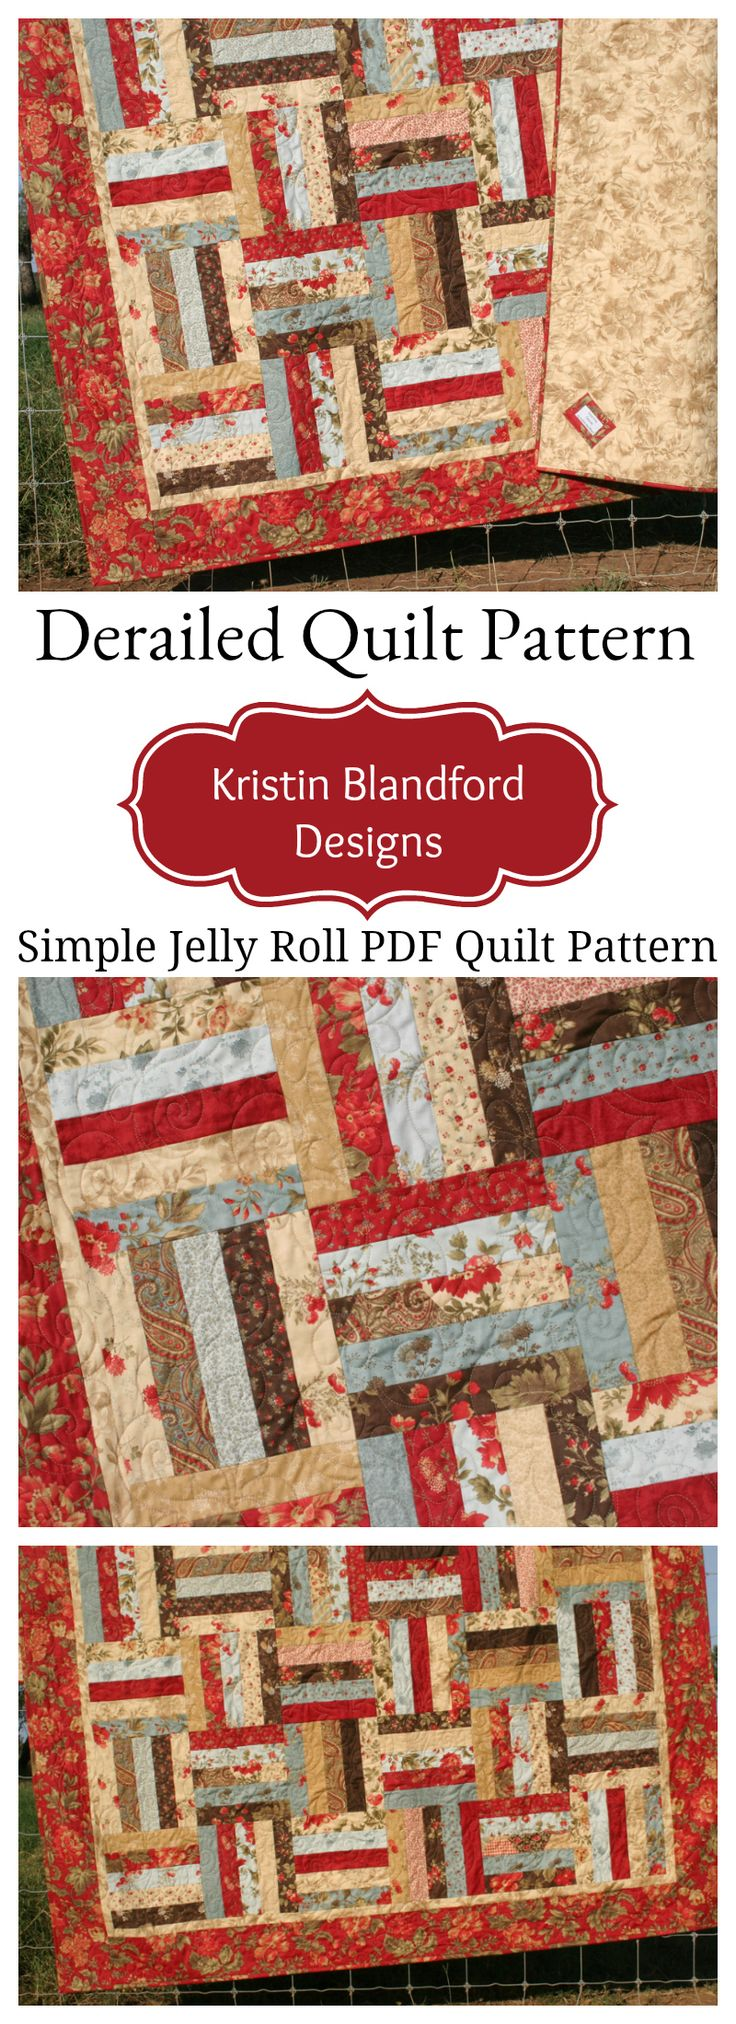 Simple Quick Easy Jelly Roll Quilt Pattern, Derailed Quilt Pattern, Beginner Quilt Pattern, Traditional Winter Fall Throw Quilt Pattern, Pre-cut Quilt Pattern by Kristin Blandford Designs #quilting #quickquilts #quiltingideas #sewingpattern